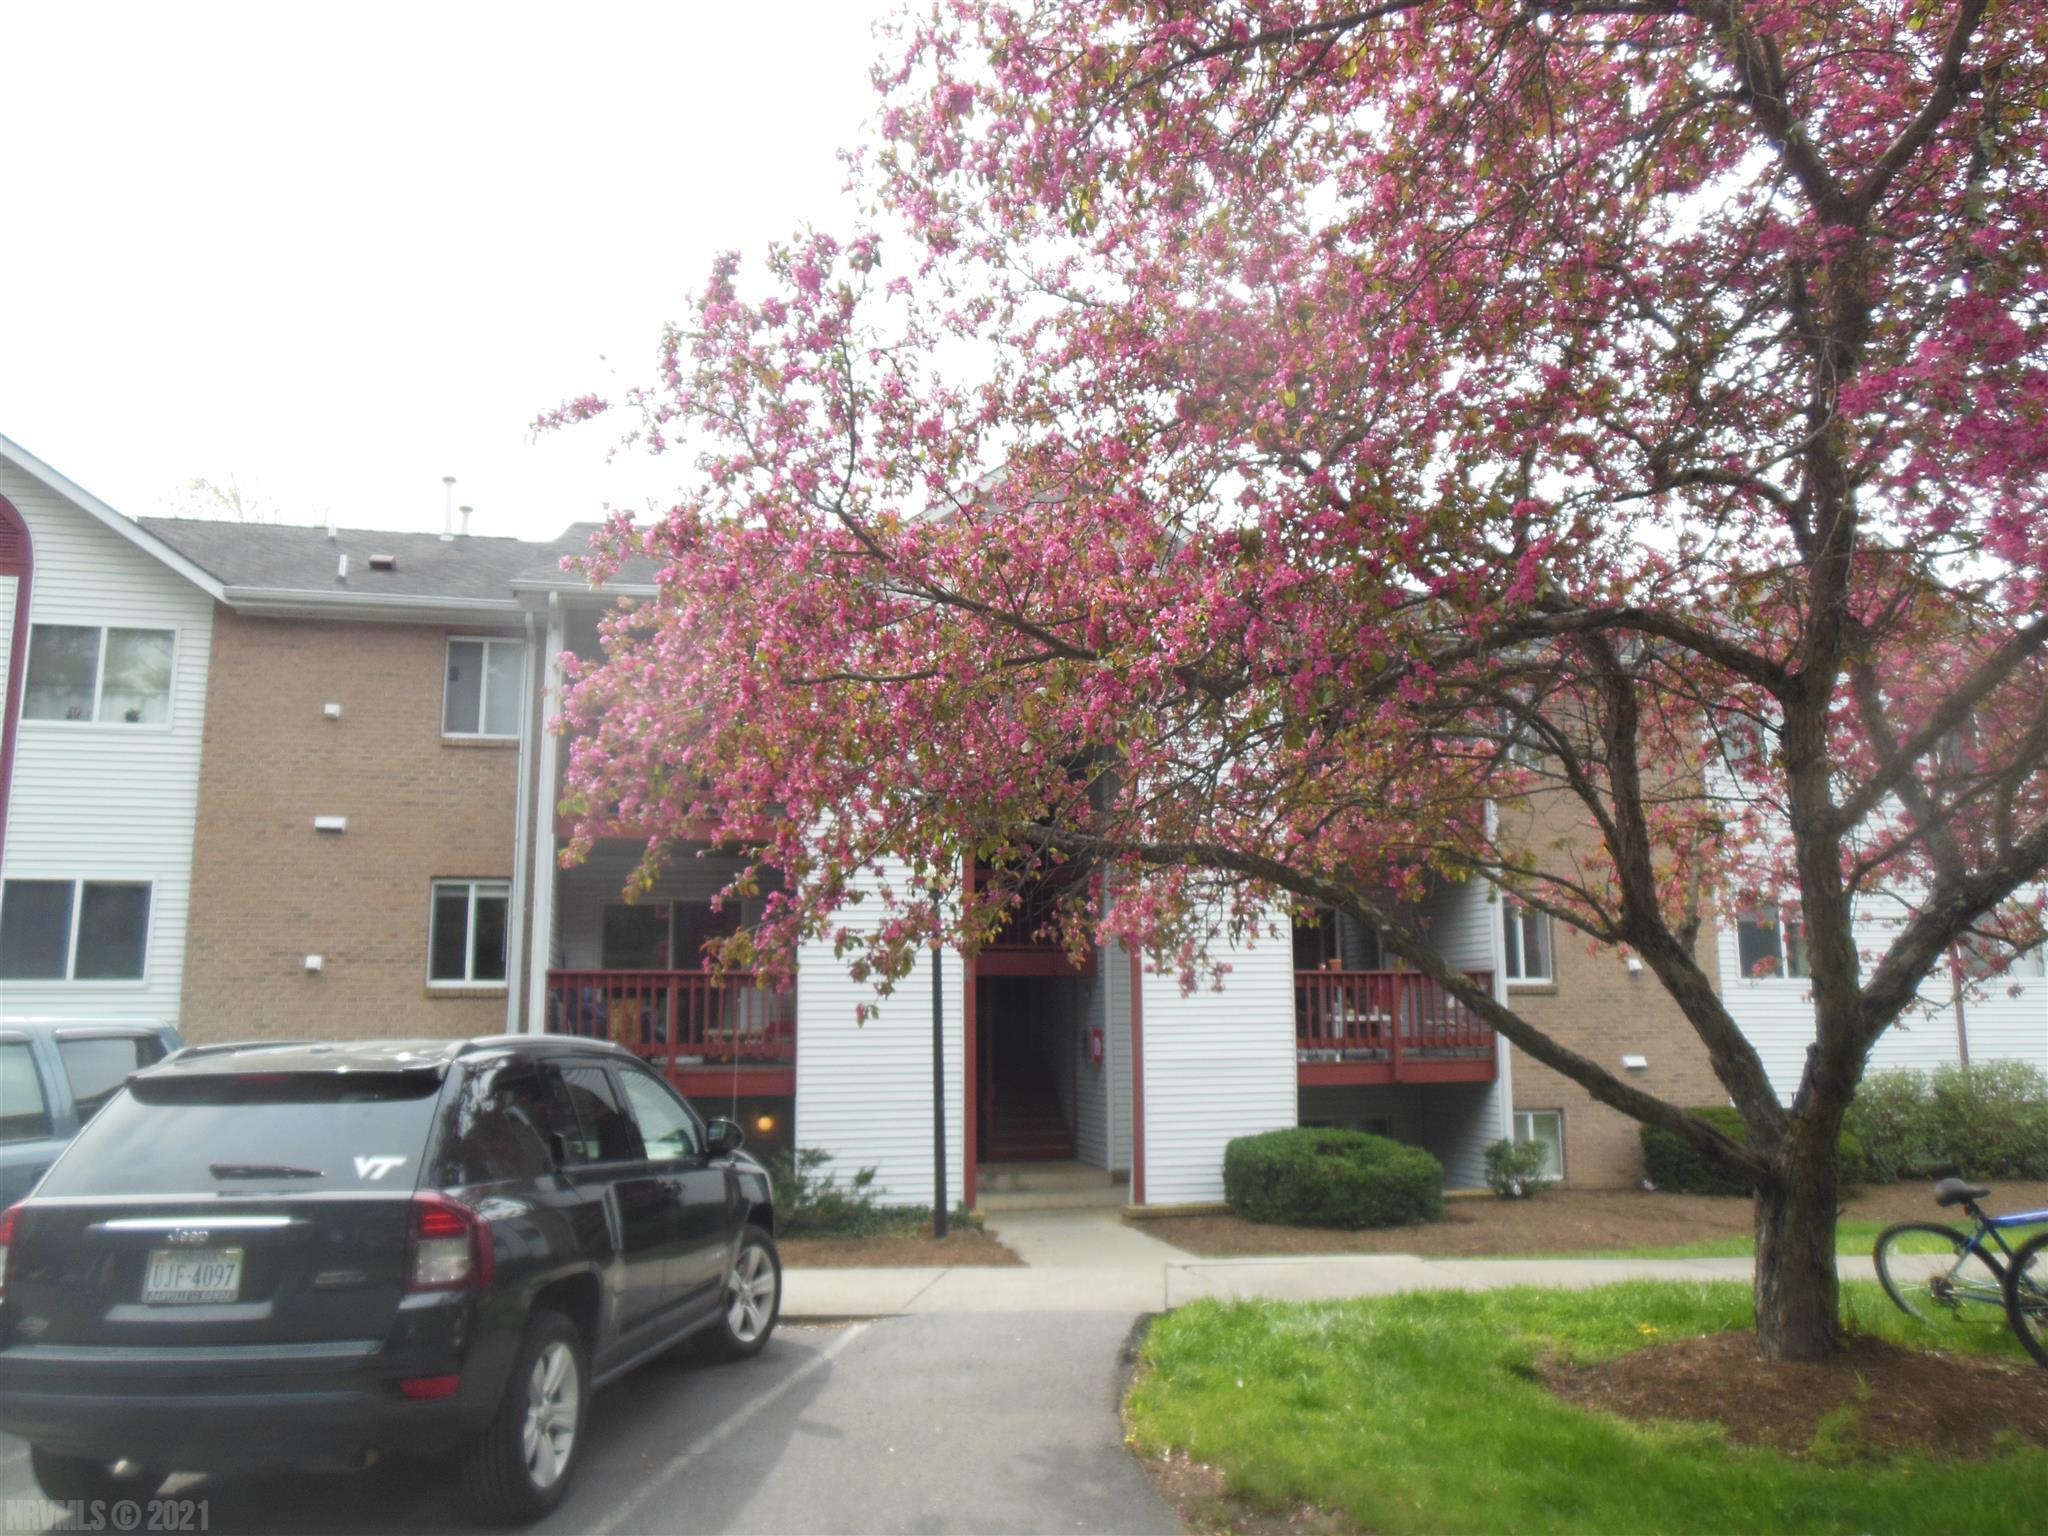 Walking distance to VTech campus, down town, eateries, entertainment, shopping, etc. Large rooms, light with large windows, beautiful deck and full kitchen. The condo is rented out till 2022, and is managed by the owners.  New braided alarm system to W/D, toilets, water heater. Gas heat, Electric AC. HOA is $165/ month which covers the water/sewer and trash pick up.